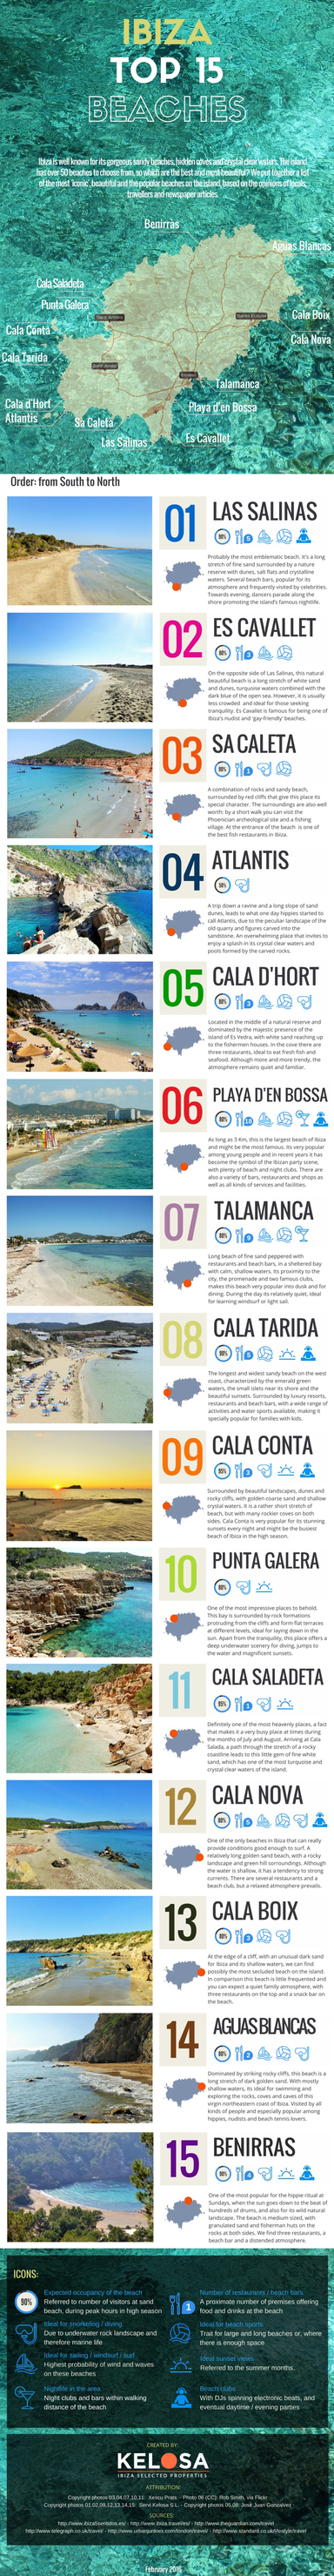 ibiza-top-15-beaches-white_sou-2